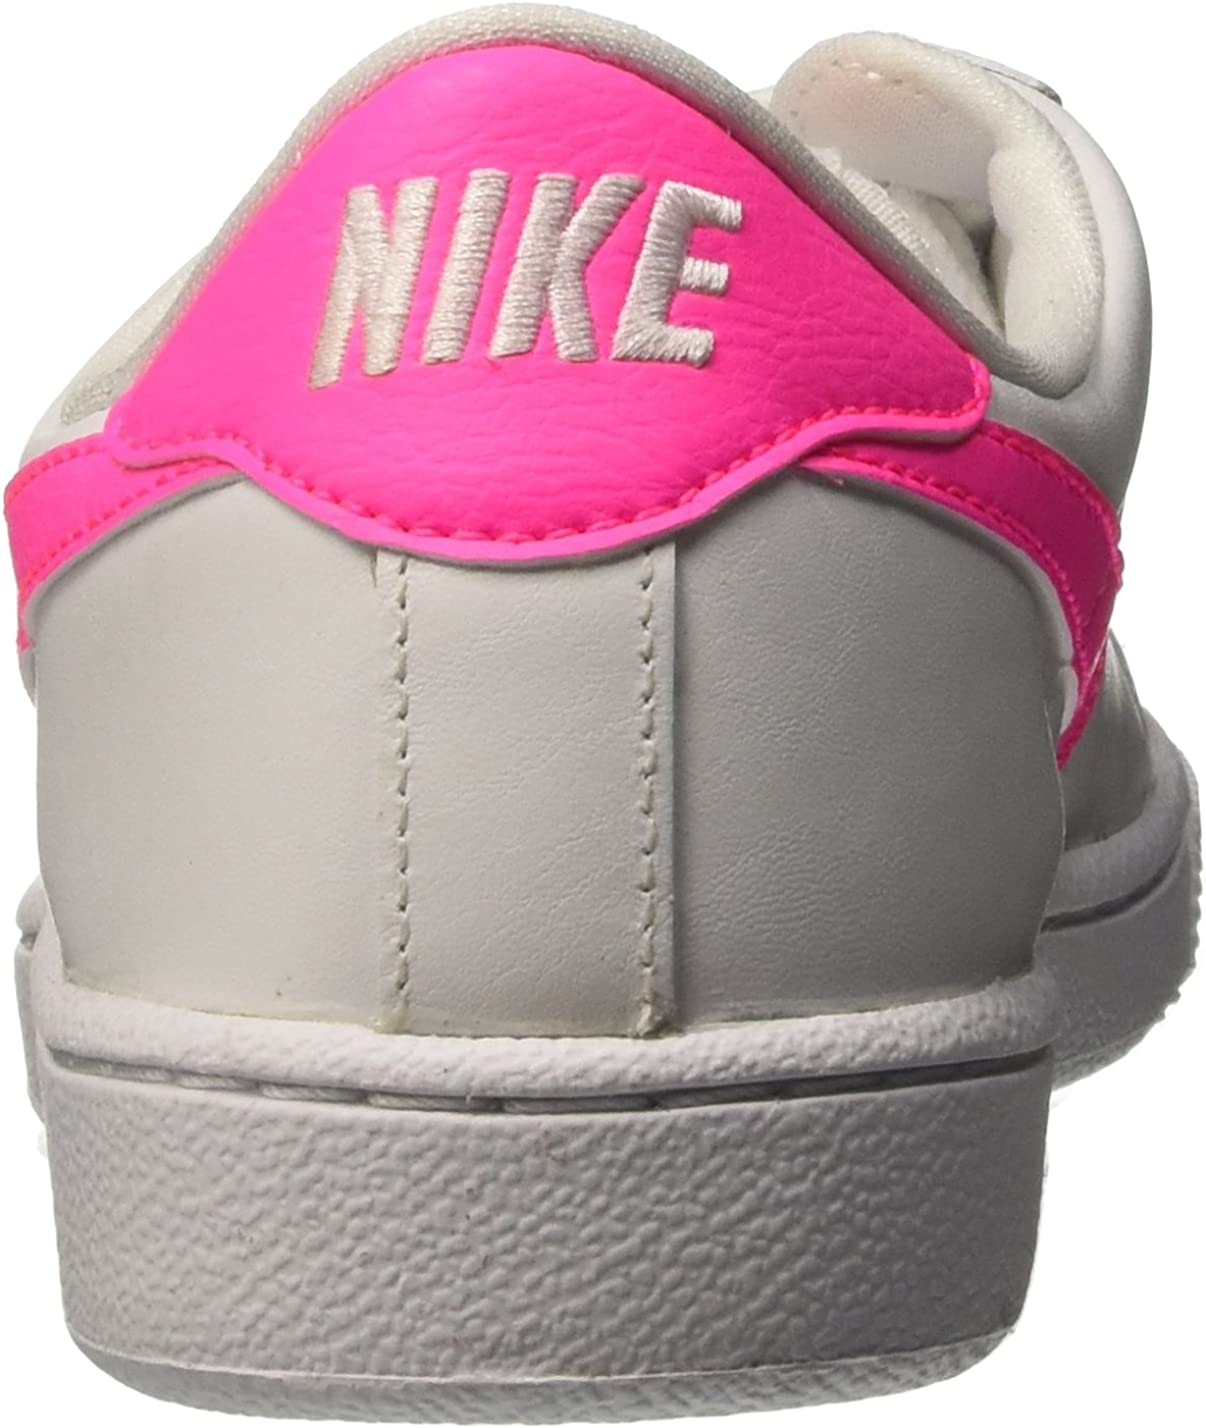 reliable quality factory authentic cheap for sale Nike Women's WMNS Tennis Classic Sneakers, Elfenbein (White/Pink ...